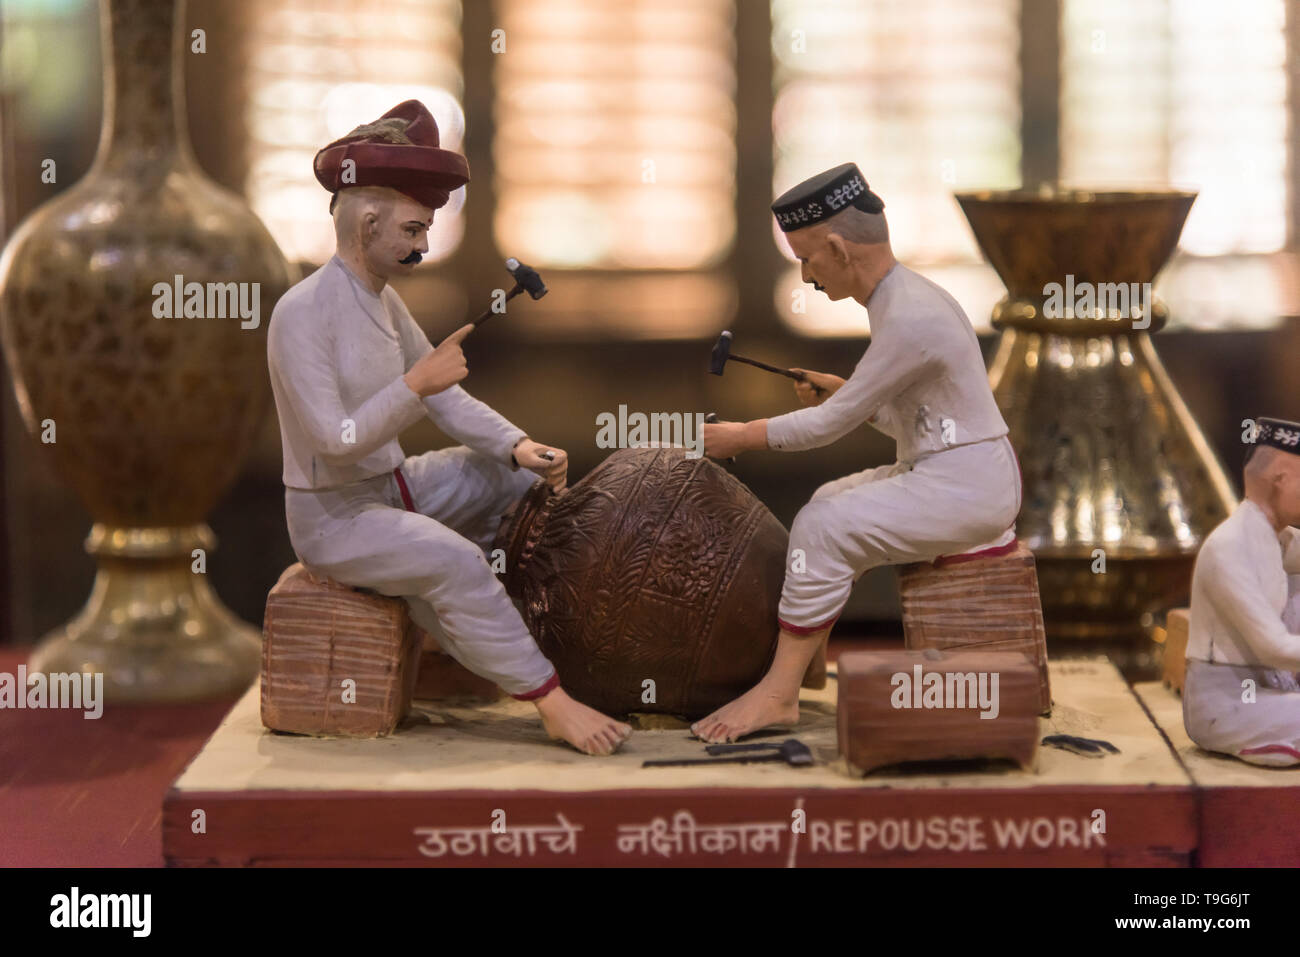 Repousse Work clay model, Dr Bhau Daji Lad Museum, Mumbai, India - Stock Image